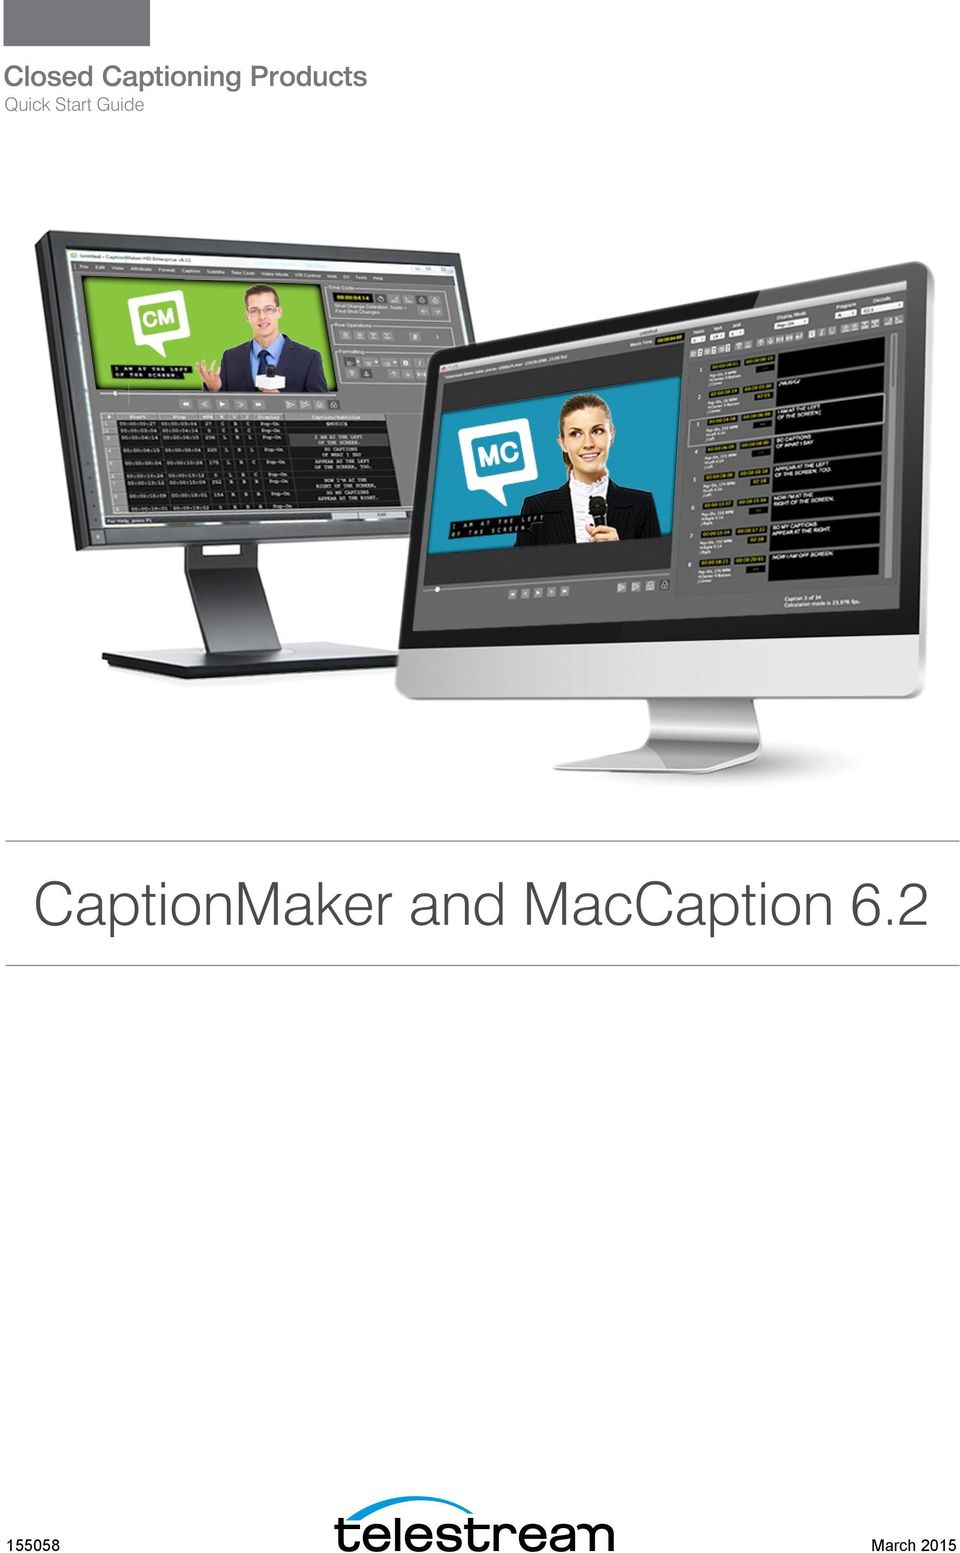 CaptionMaker and